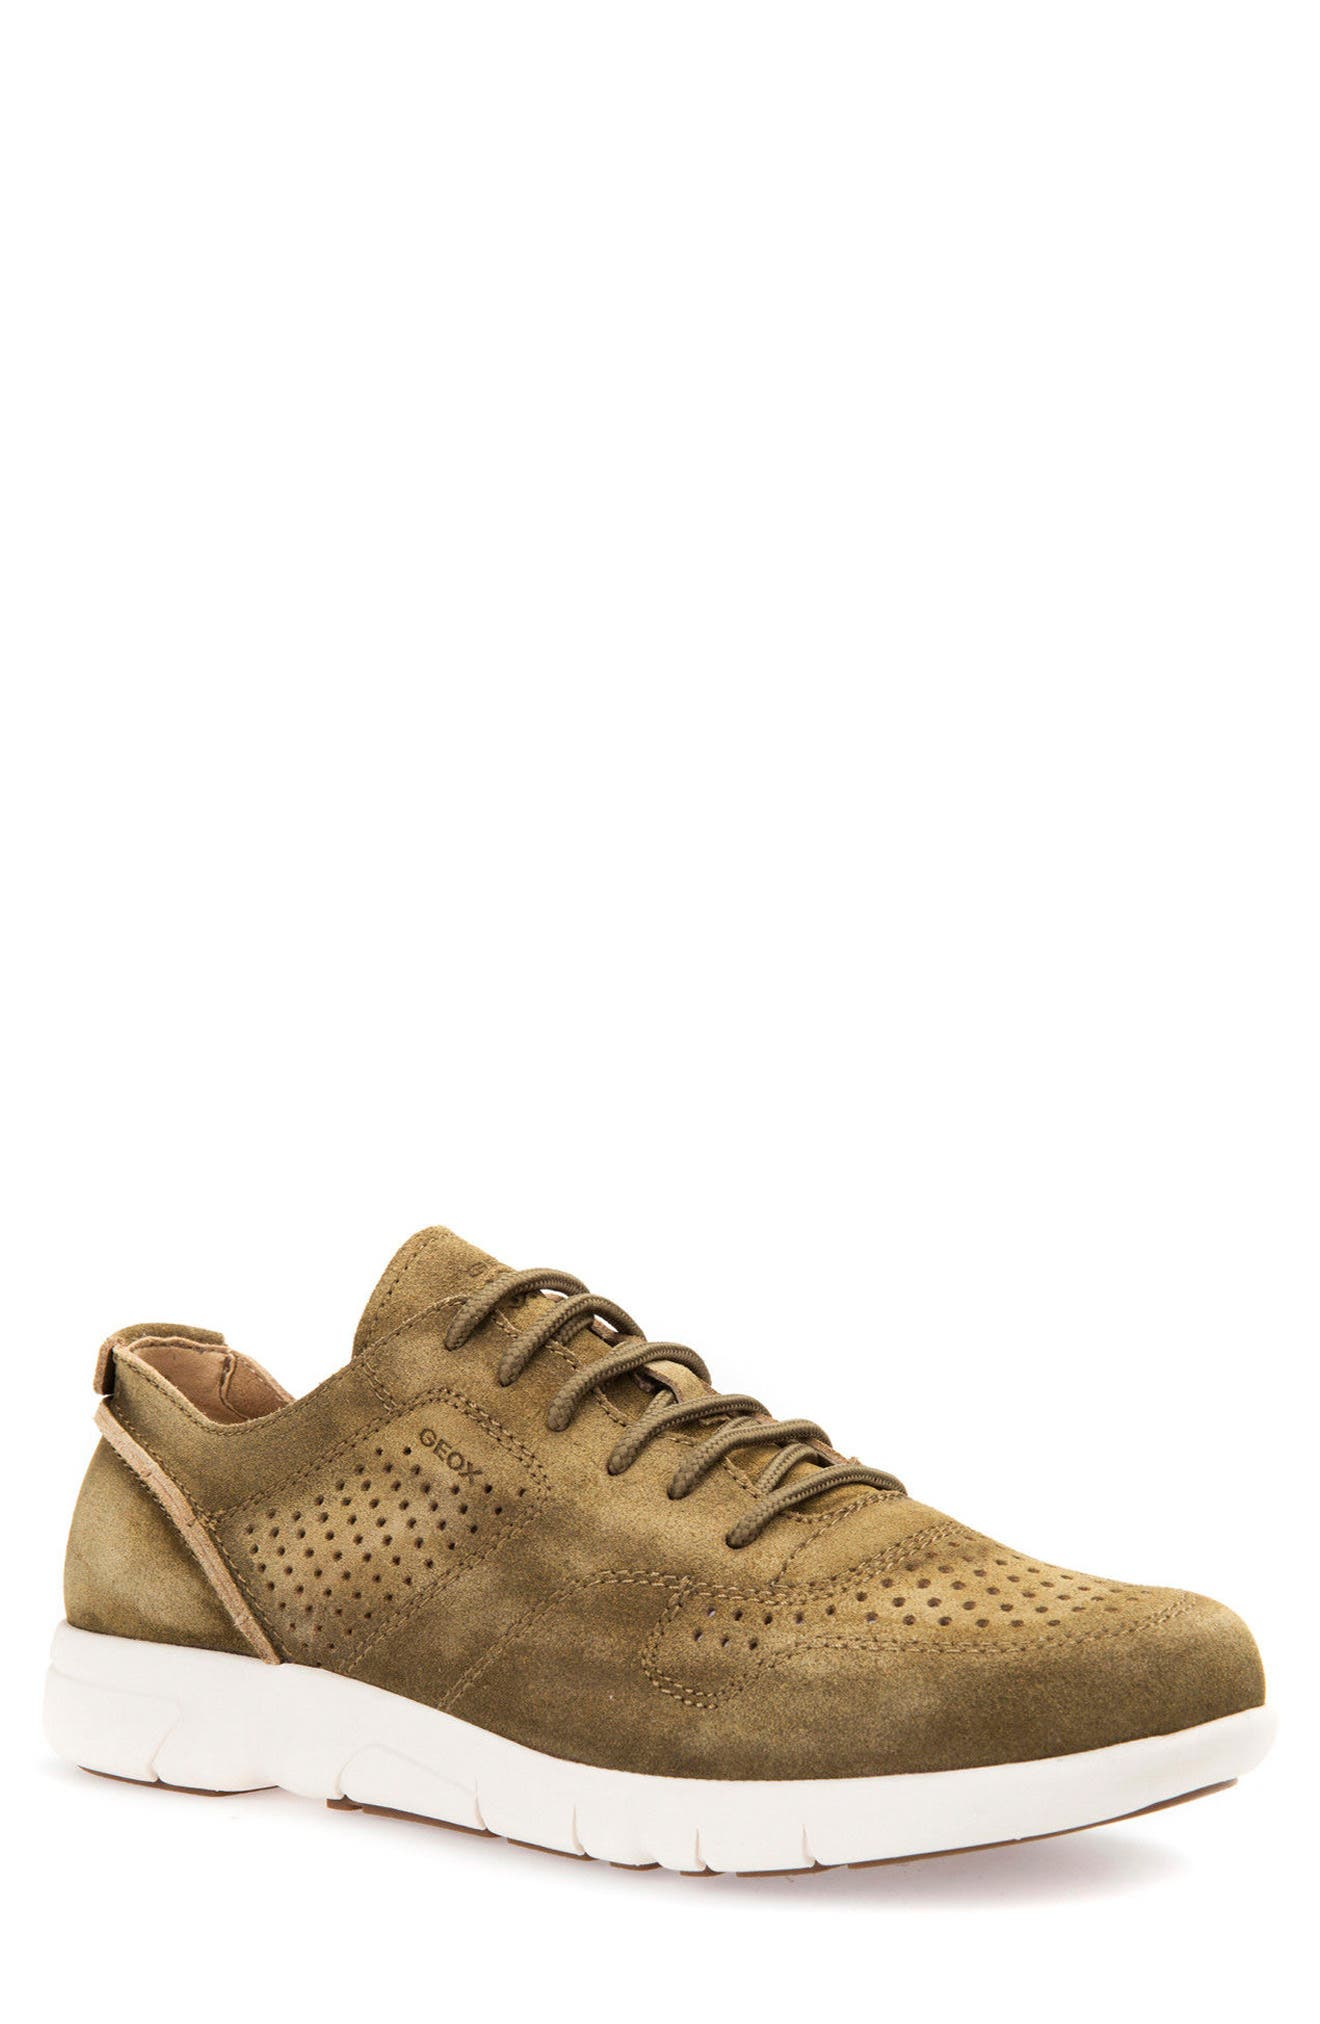 Brattley 2 Perforated Sneaker,                             Main thumbnail 1, color,                             Musk Suede